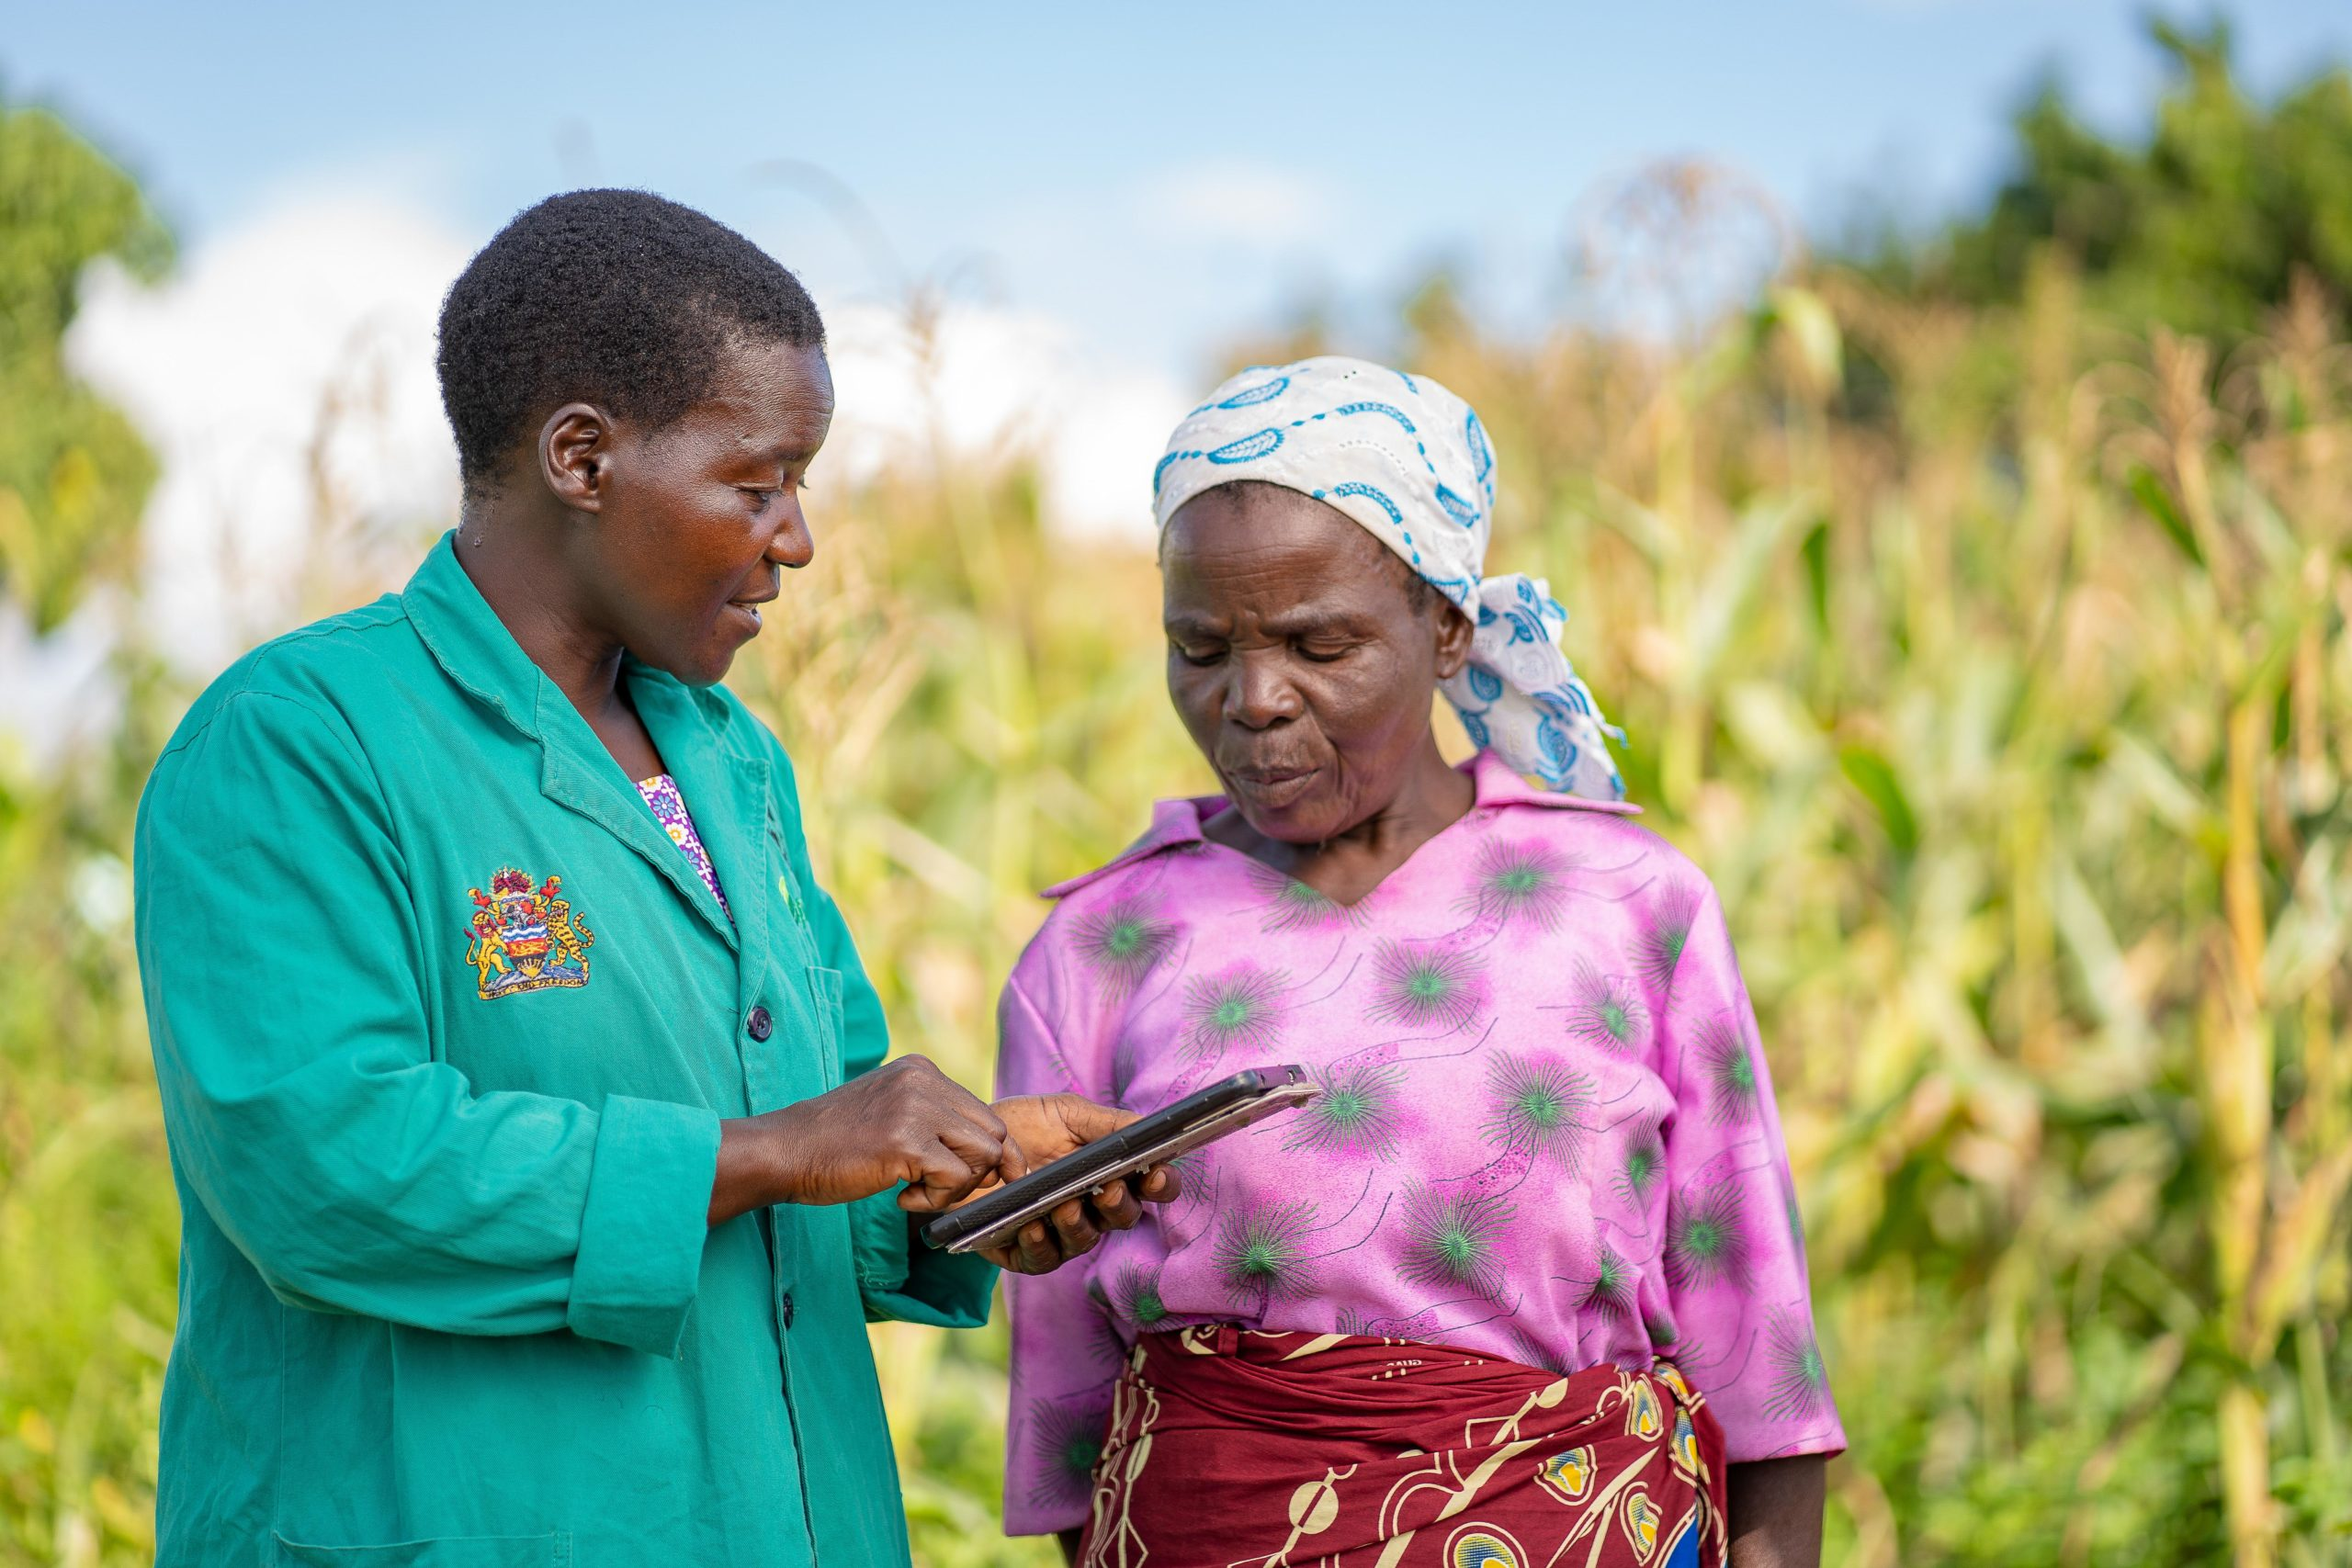 Digital sustainability: Plantwise tools supporting smallholder farmers